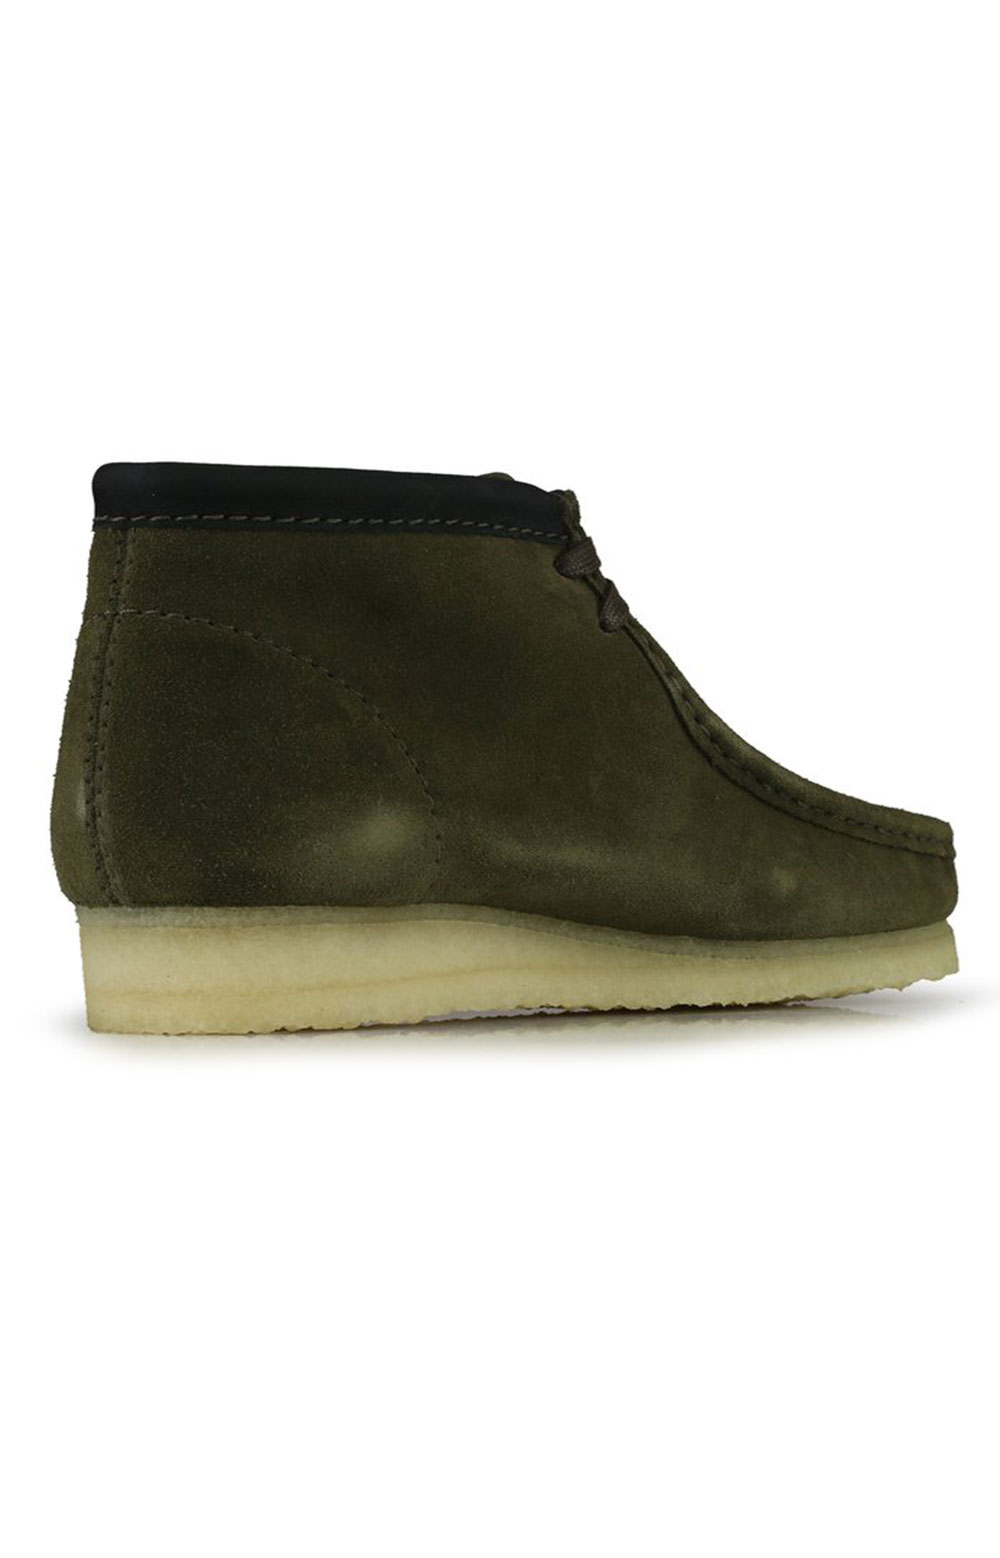 (26154740) Wallabee Boots - Olive Interest  5